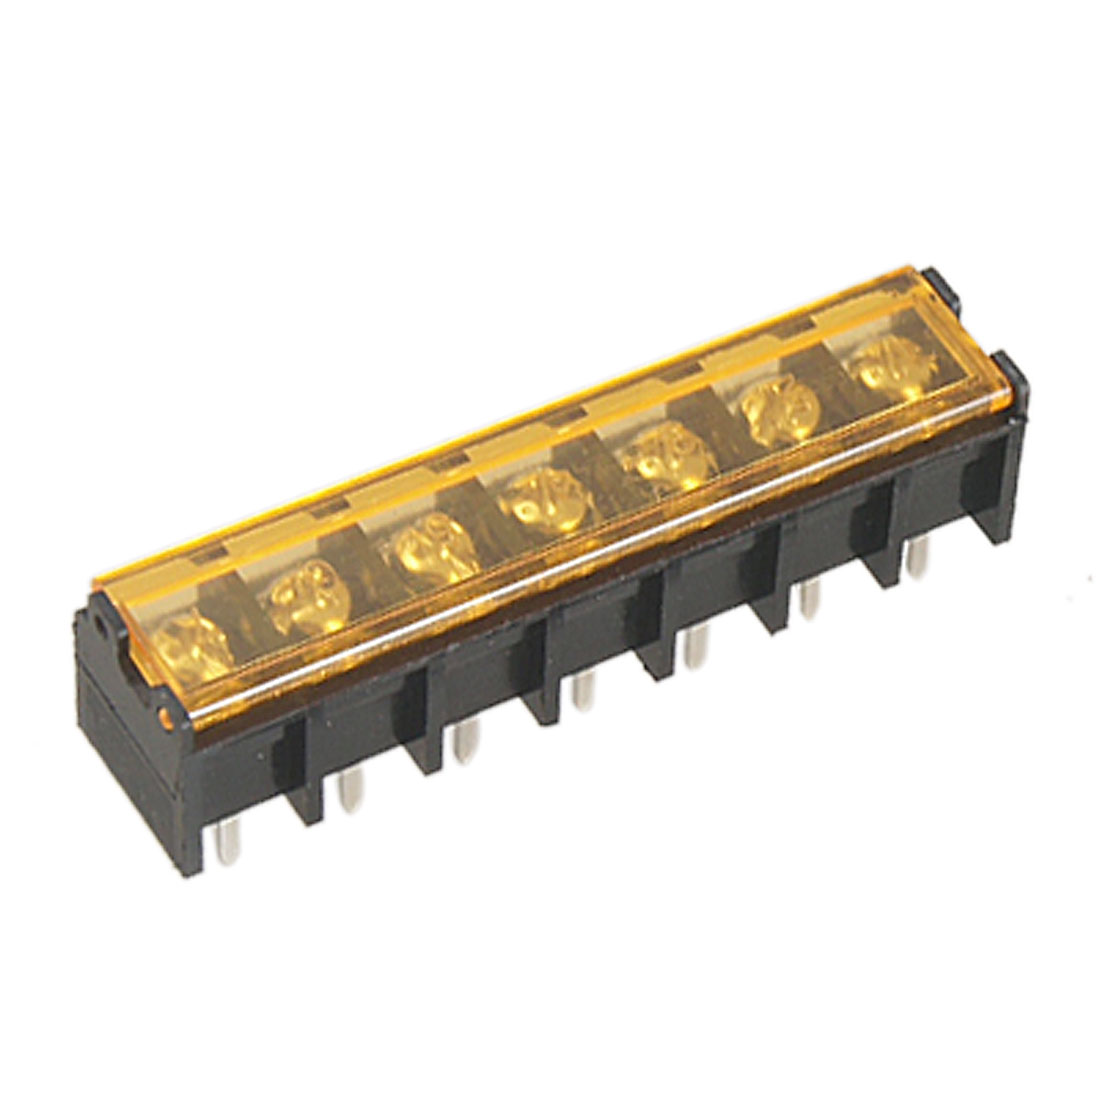 9.5mm Pitch 7 Pin 300V 30A Barrier Terminal Block 5 Pcs